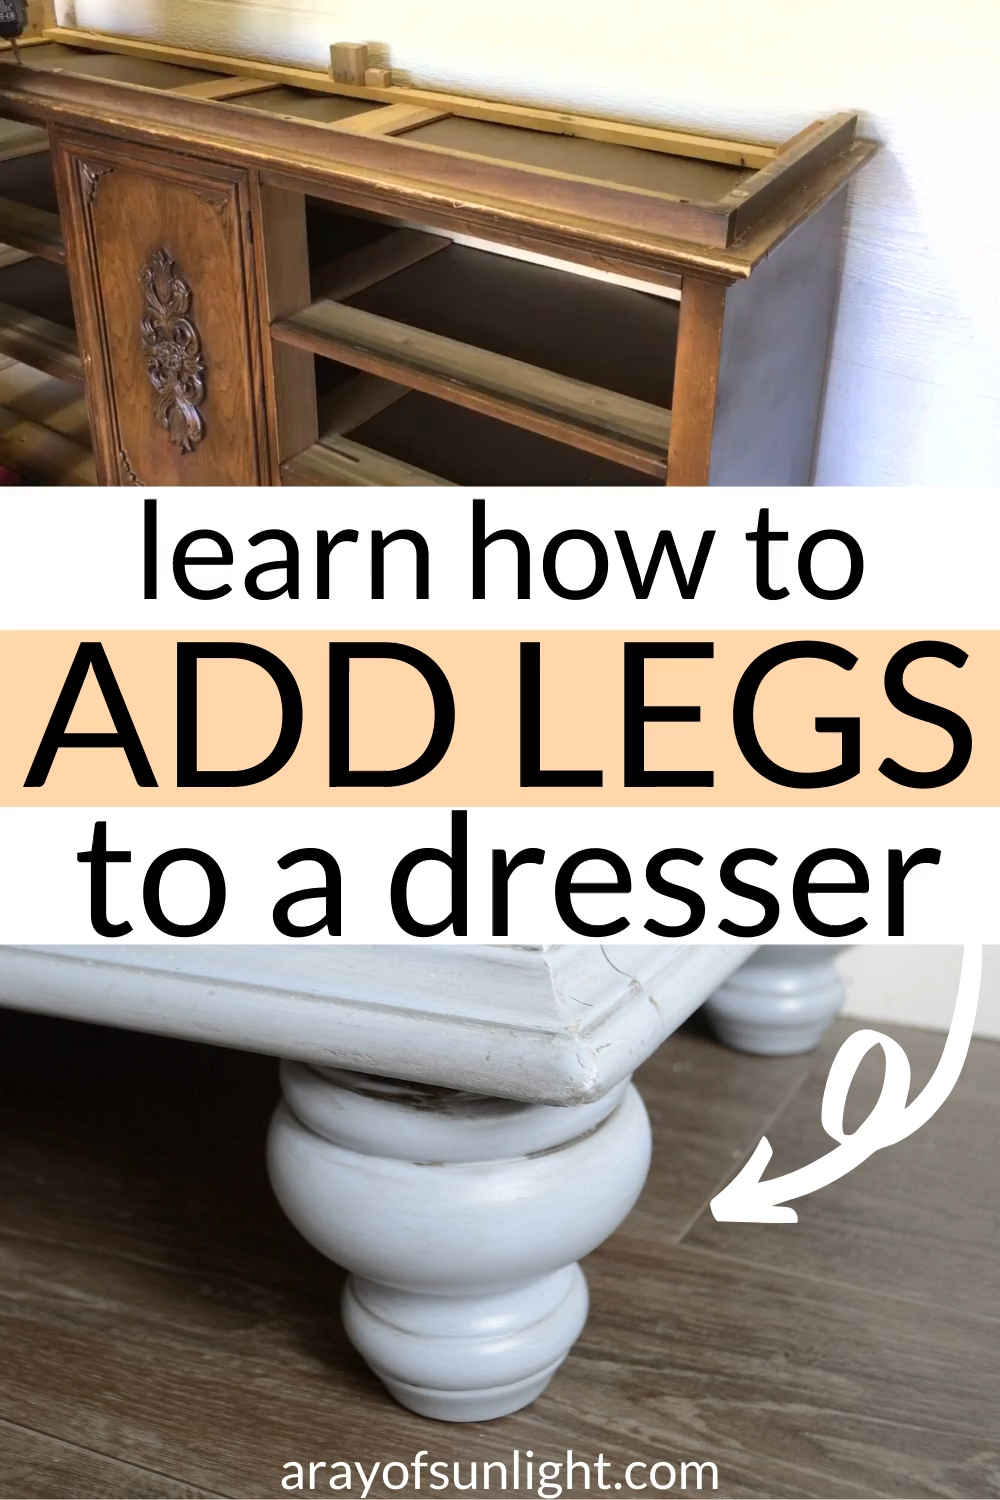 How to add legs to painted furniture (dresser, buffet, nightstand or end table). This is the easiest way to add height to furniture and give it a modern farmhouse style. By A Ray of Sunlight  Put this DIY furniture idea to use on bedroom furniture, thrift store finds and vintage dressers. This would also be a great way to add height to furniture to use as a kitchen island! #dressermakeover #bedroomdiy #thriftfinds